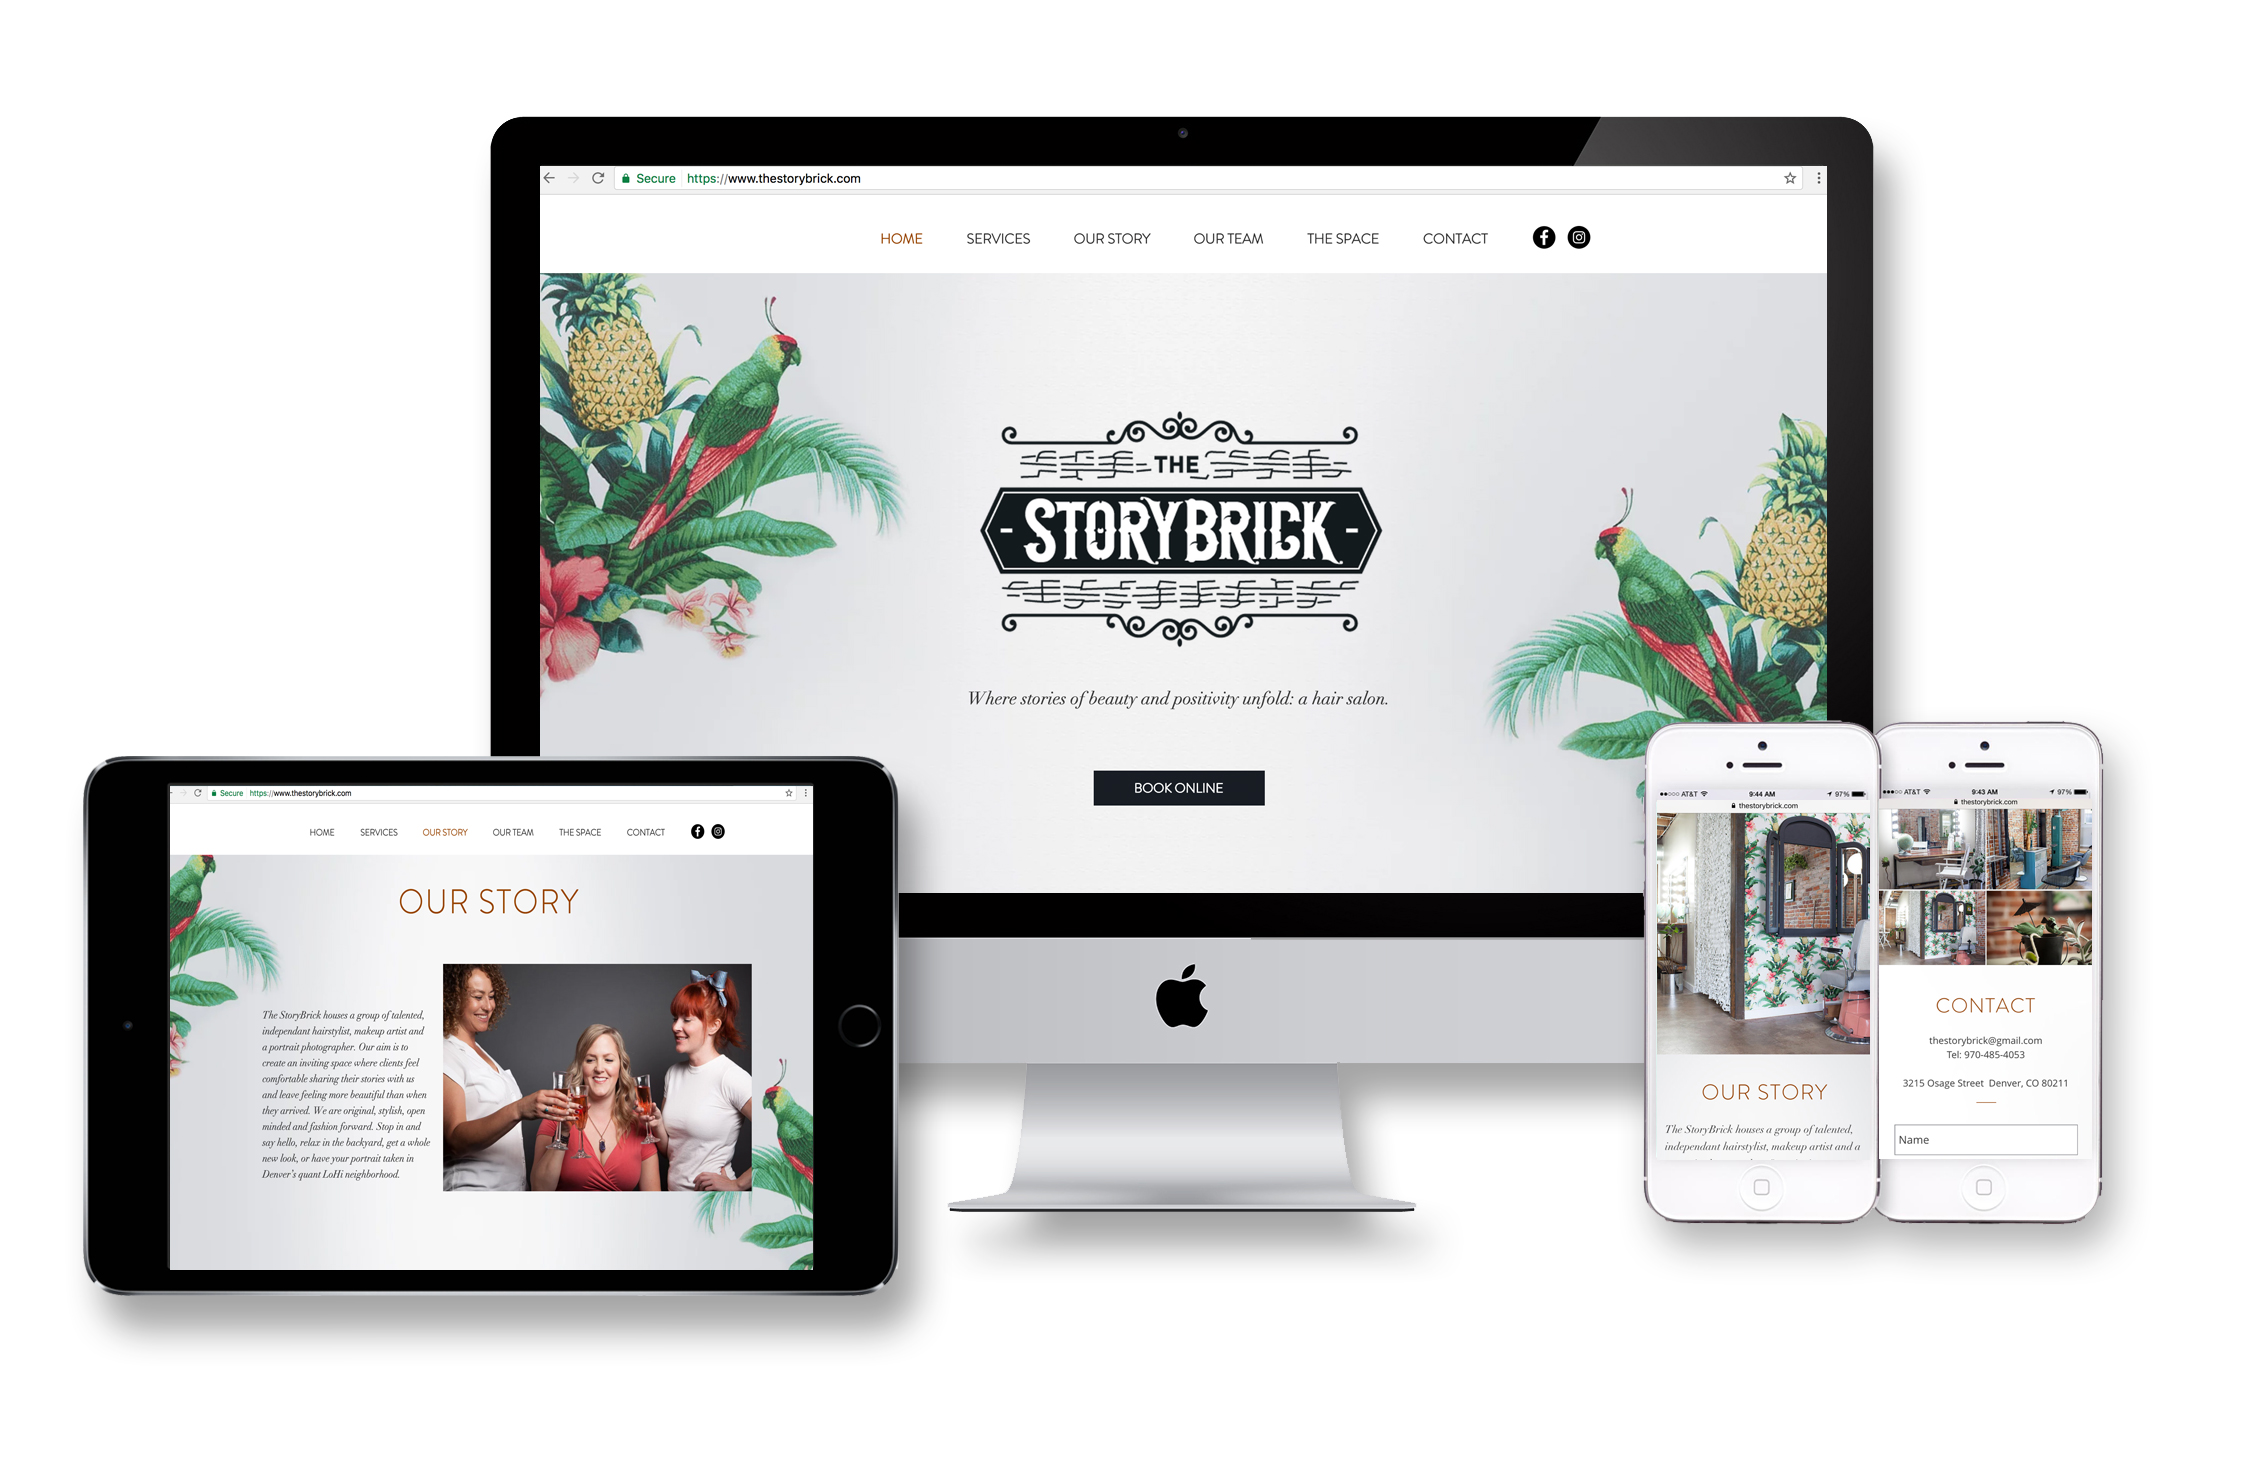 The Storybrick Website Design